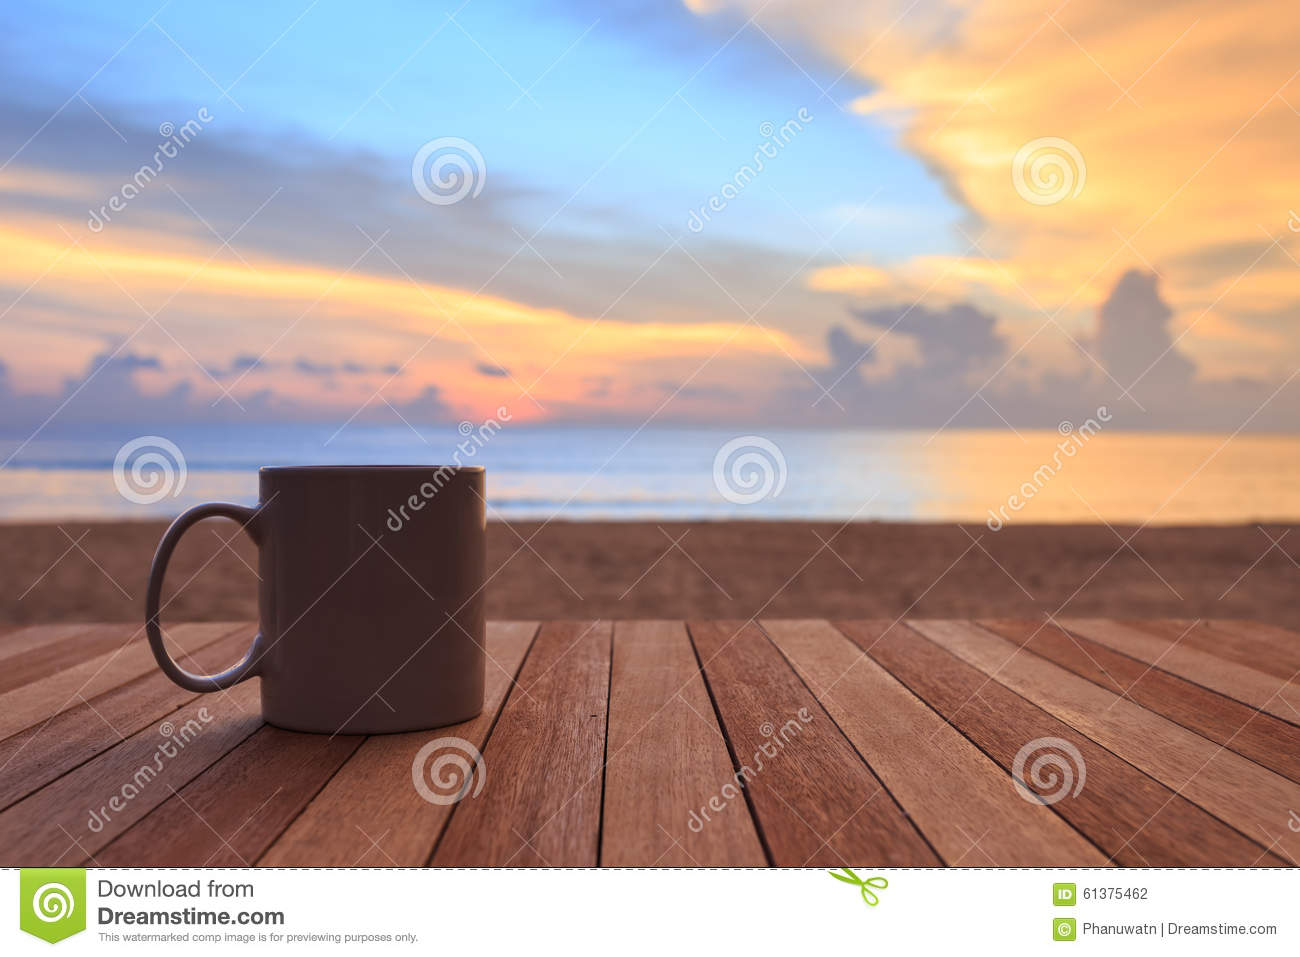 Coffee Cup On Wood Table At Sunset Or Sunrise Beach Stock Photo 61375462 - Megapixl & Coffee Cup On Wood Table At Sunset Or Sunrise Beach Stock Photo ...